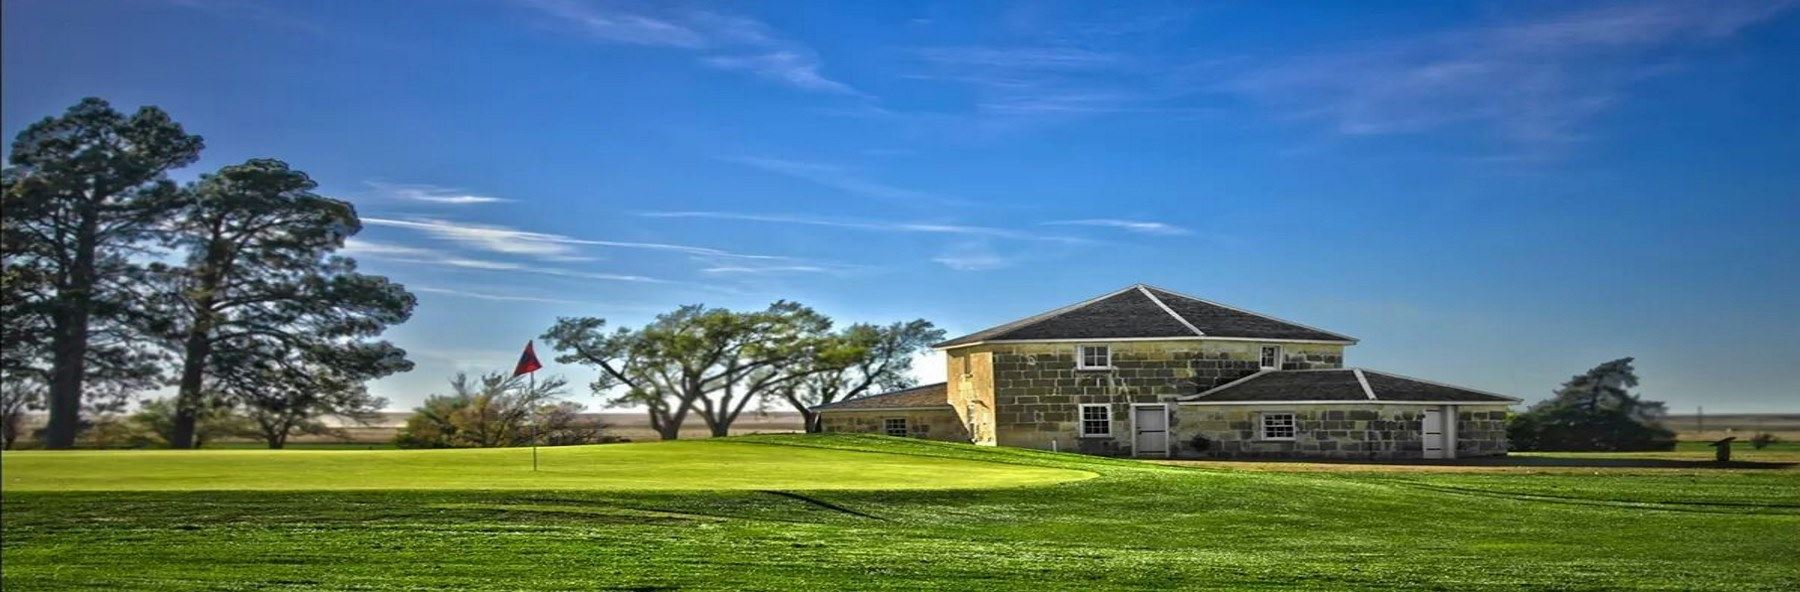 Fort Hays Golf Course